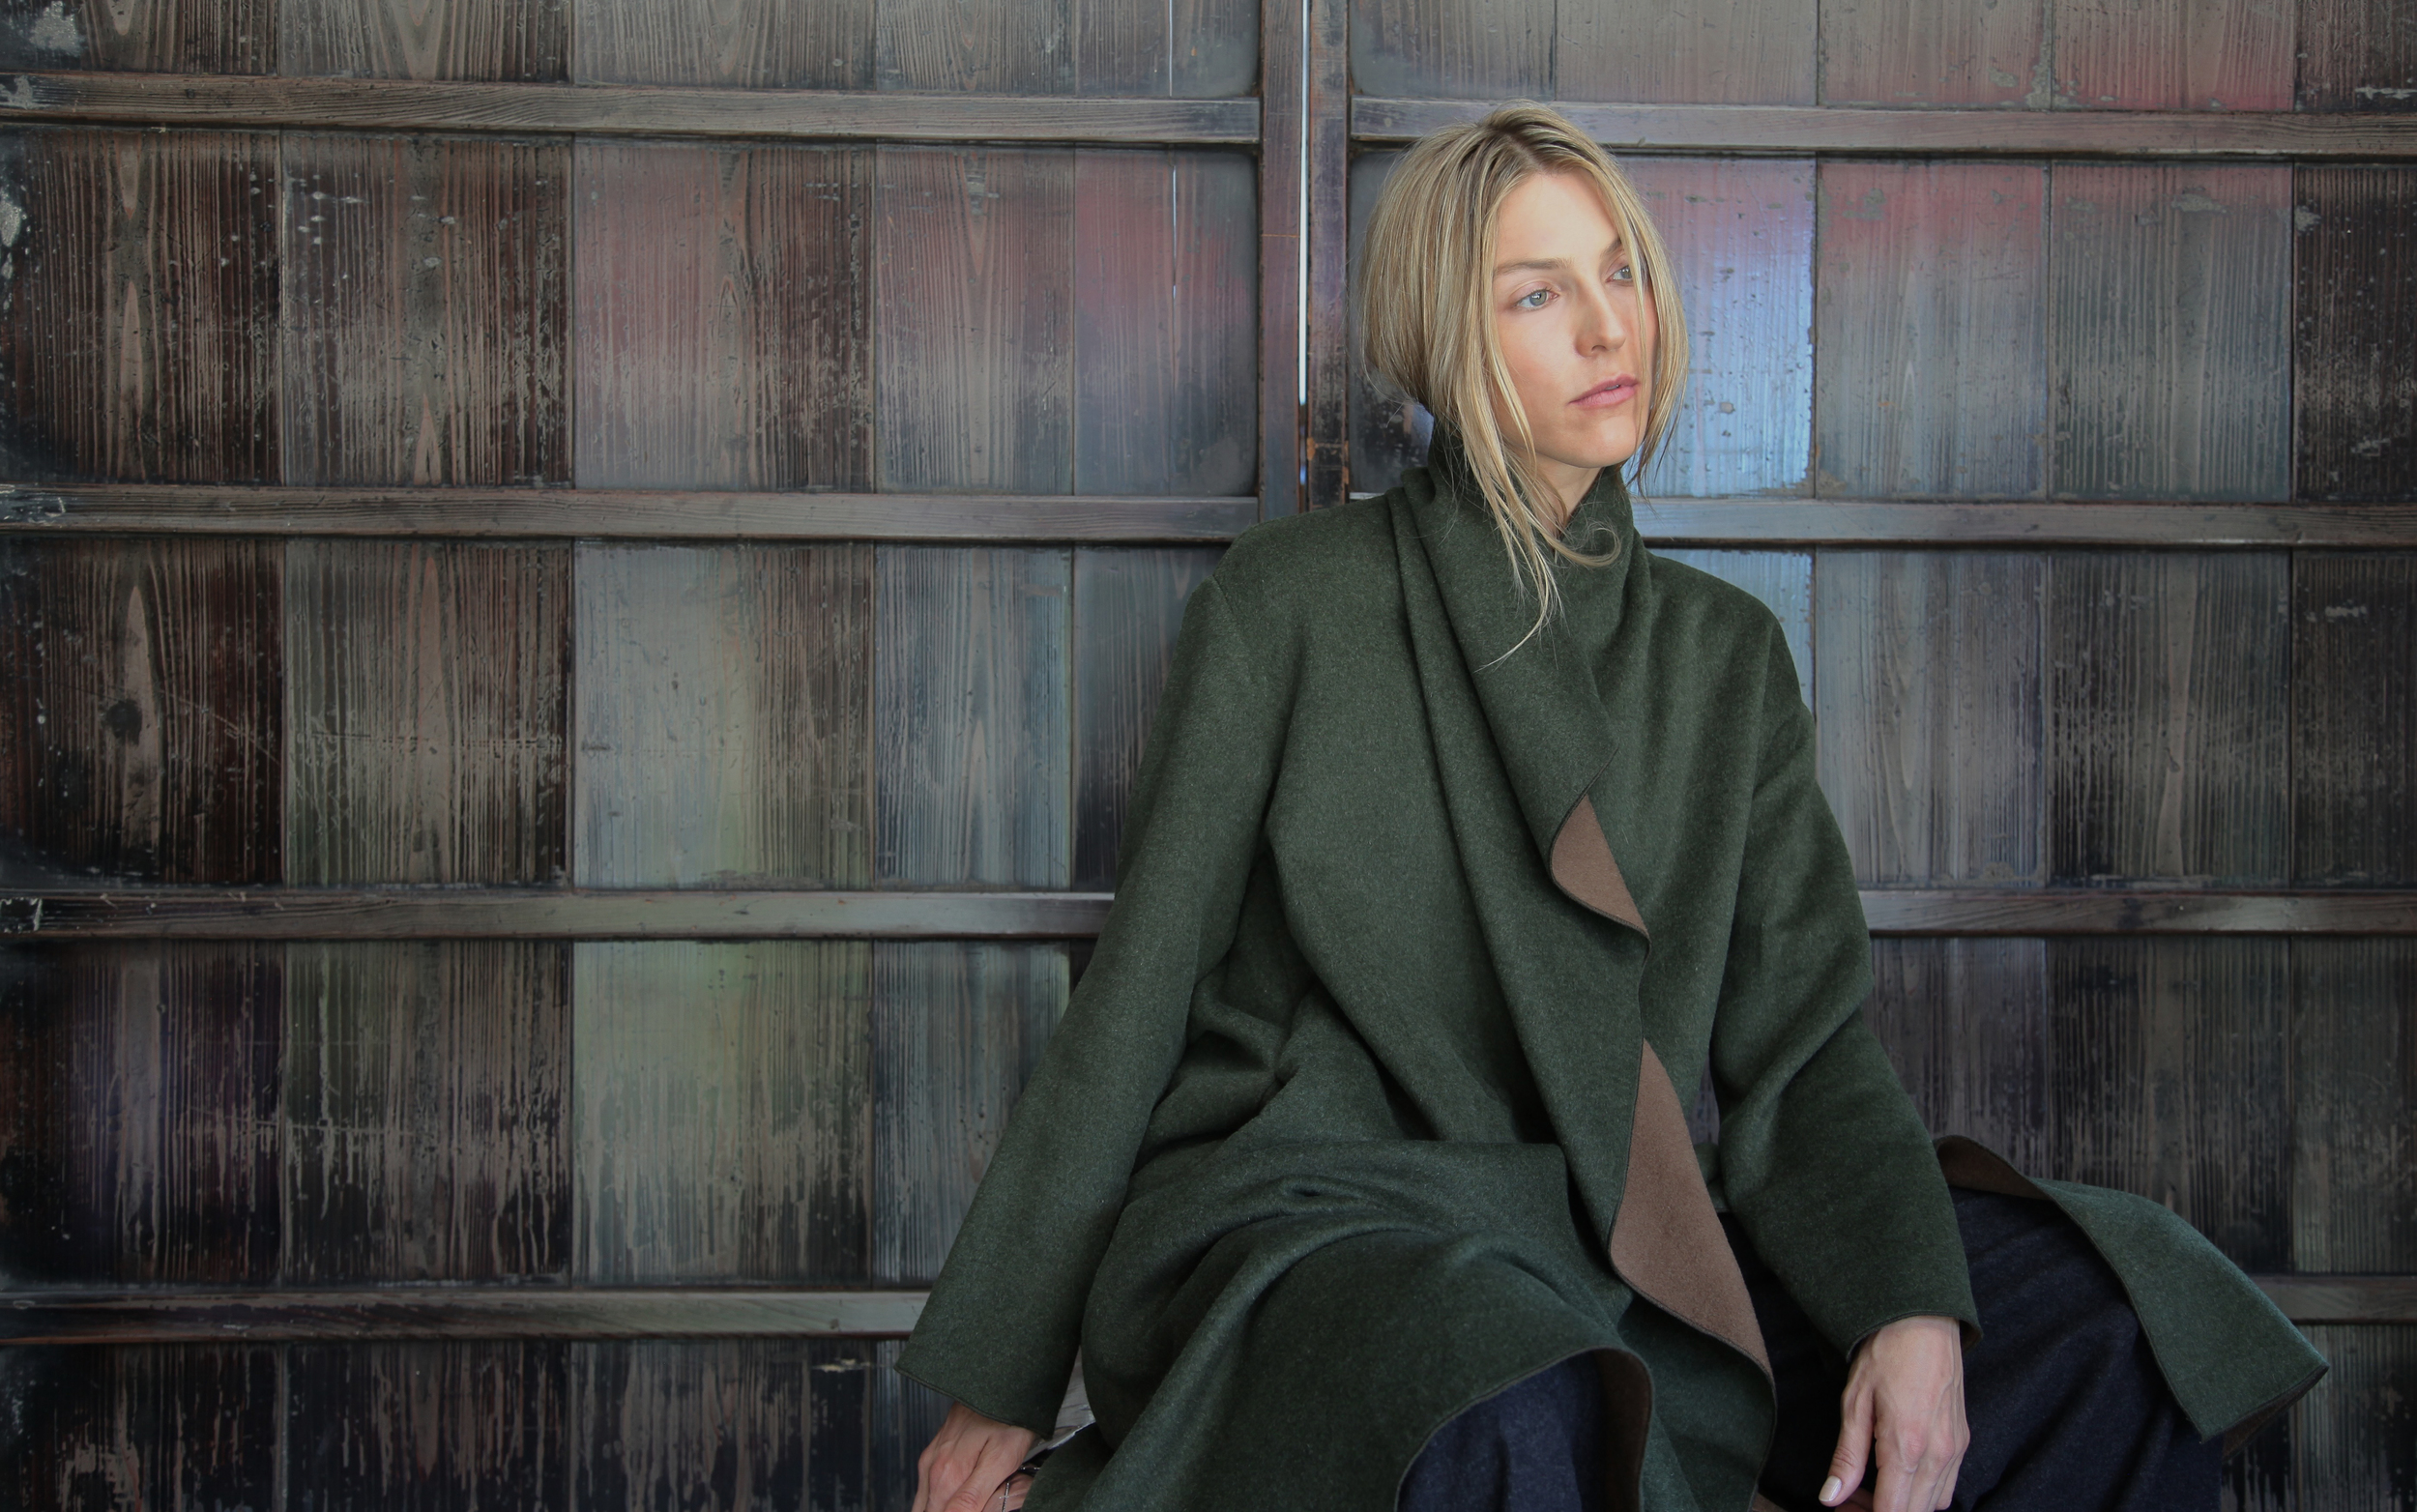 The London Coat worn right side out. Check your mailboxes – this image will be used for our fall mailer.